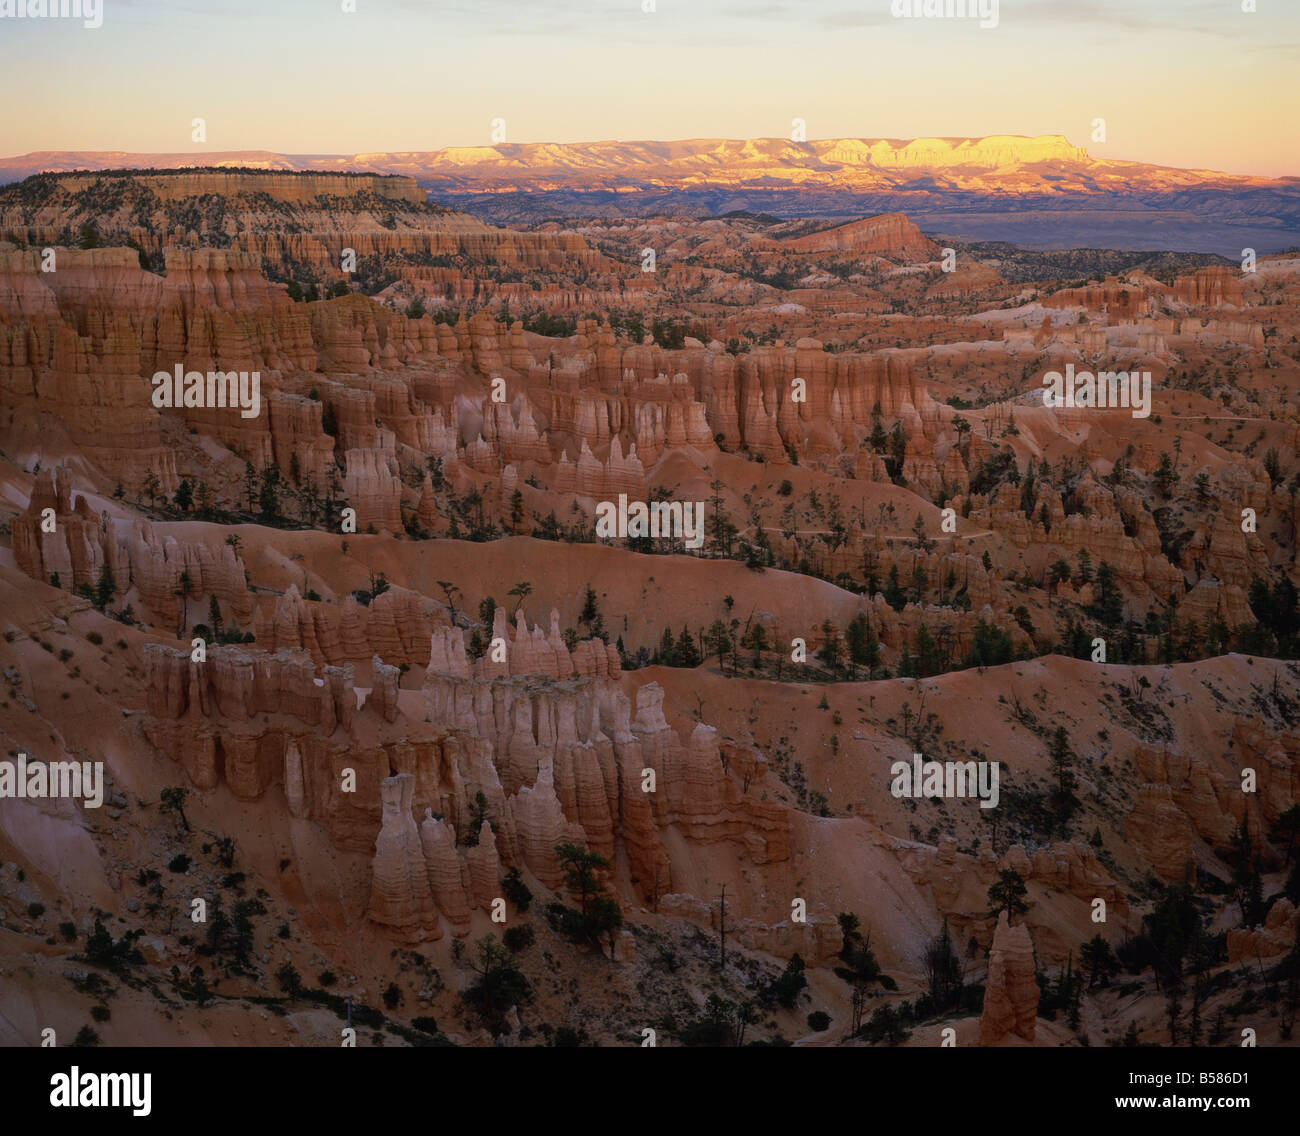 View of Bryce Canyon National Park in evening light, from Sunset Point, Utah, United States of America, North America - Stock Image